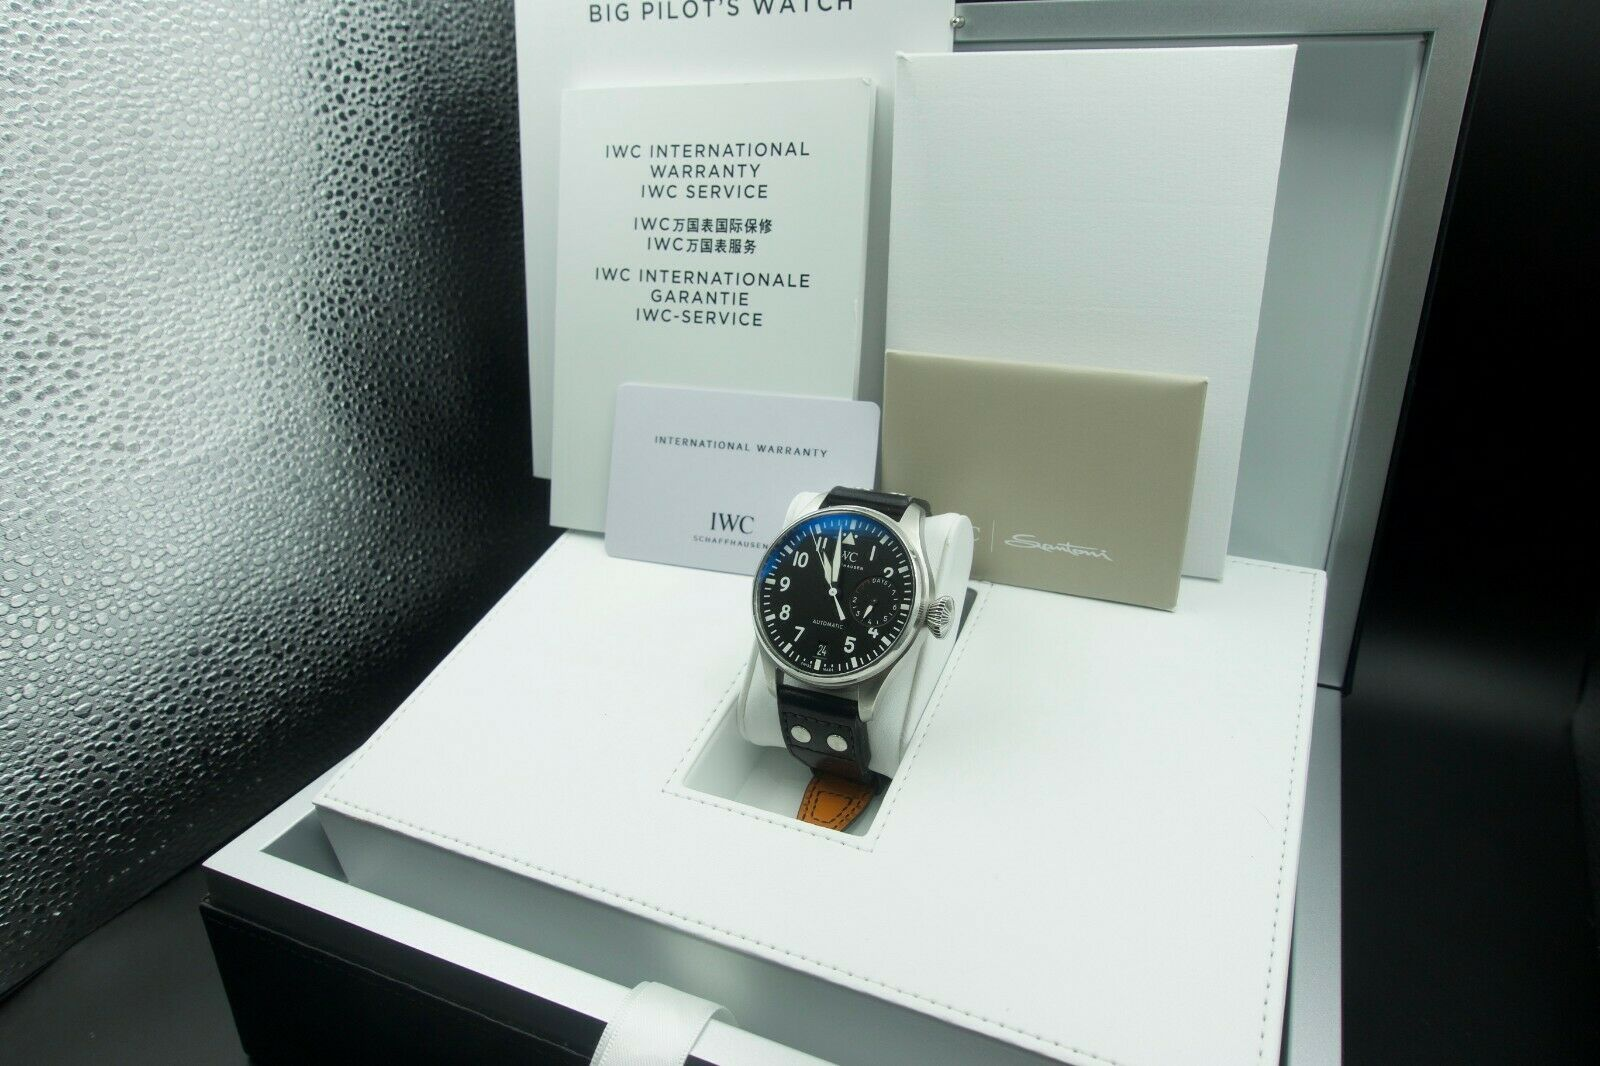 IWC Big Pilot Watch IW500912 Caliber 51111 - watch picture 1